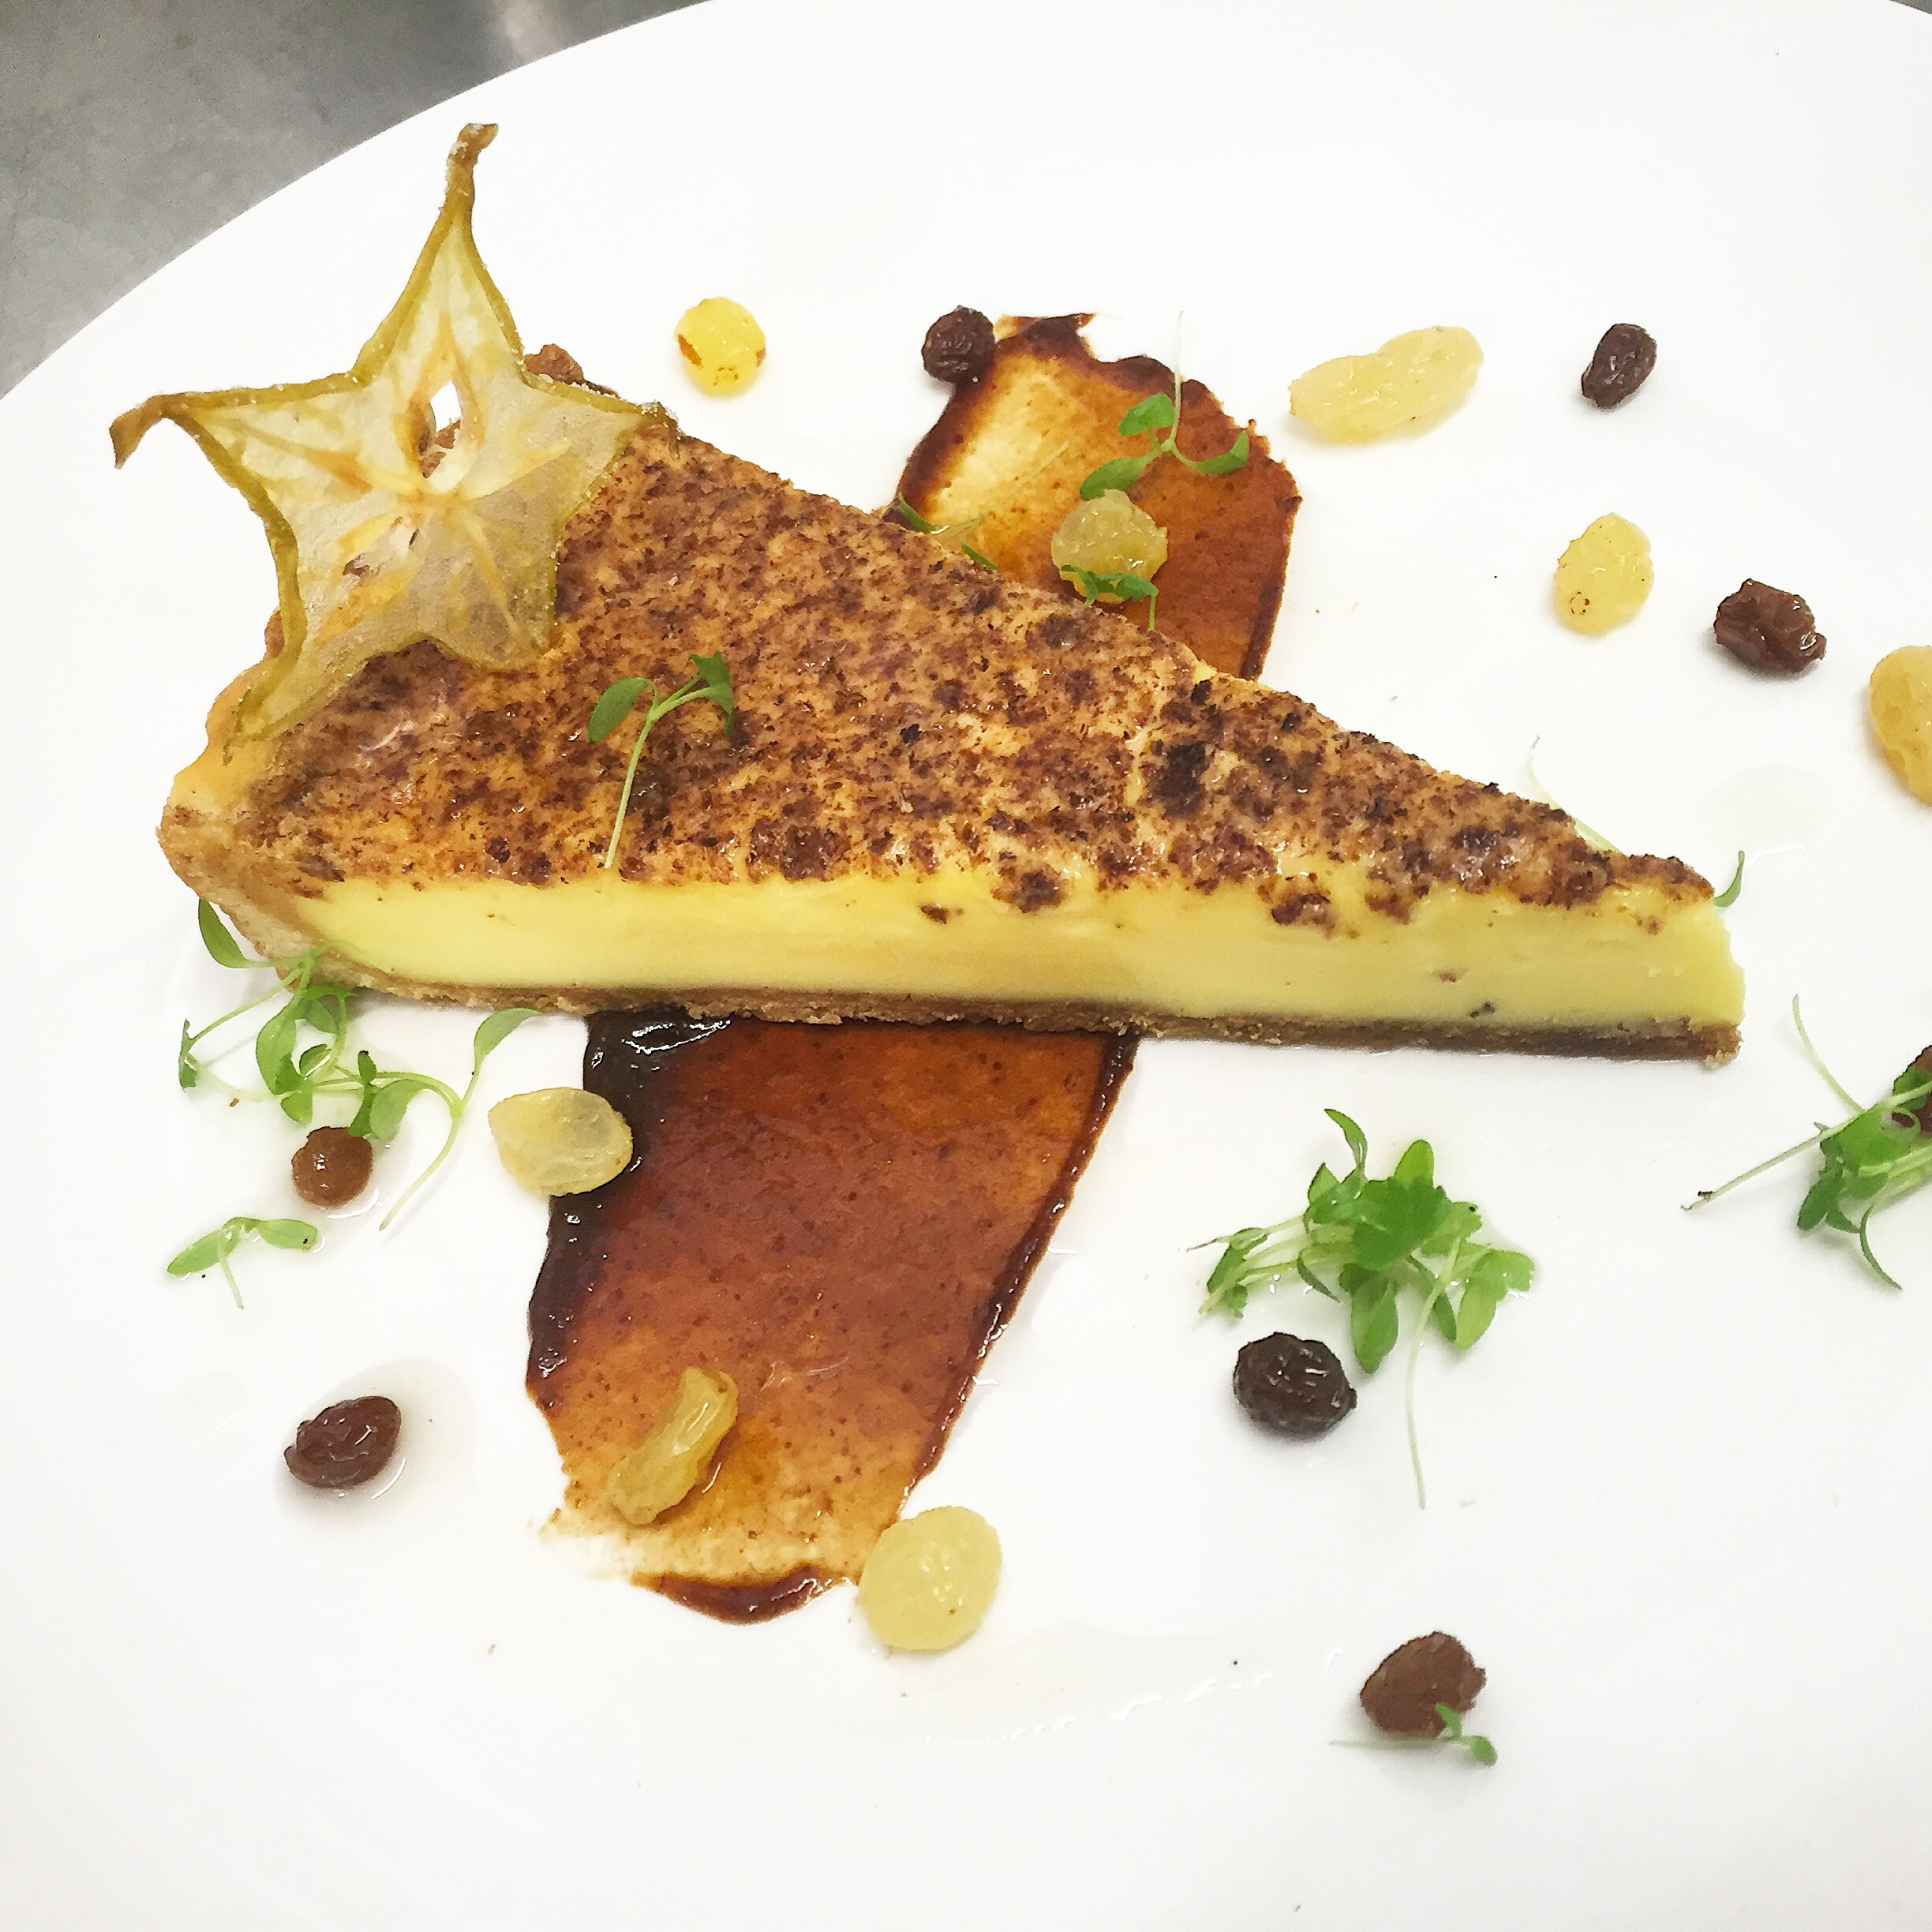 Spiced custard tart